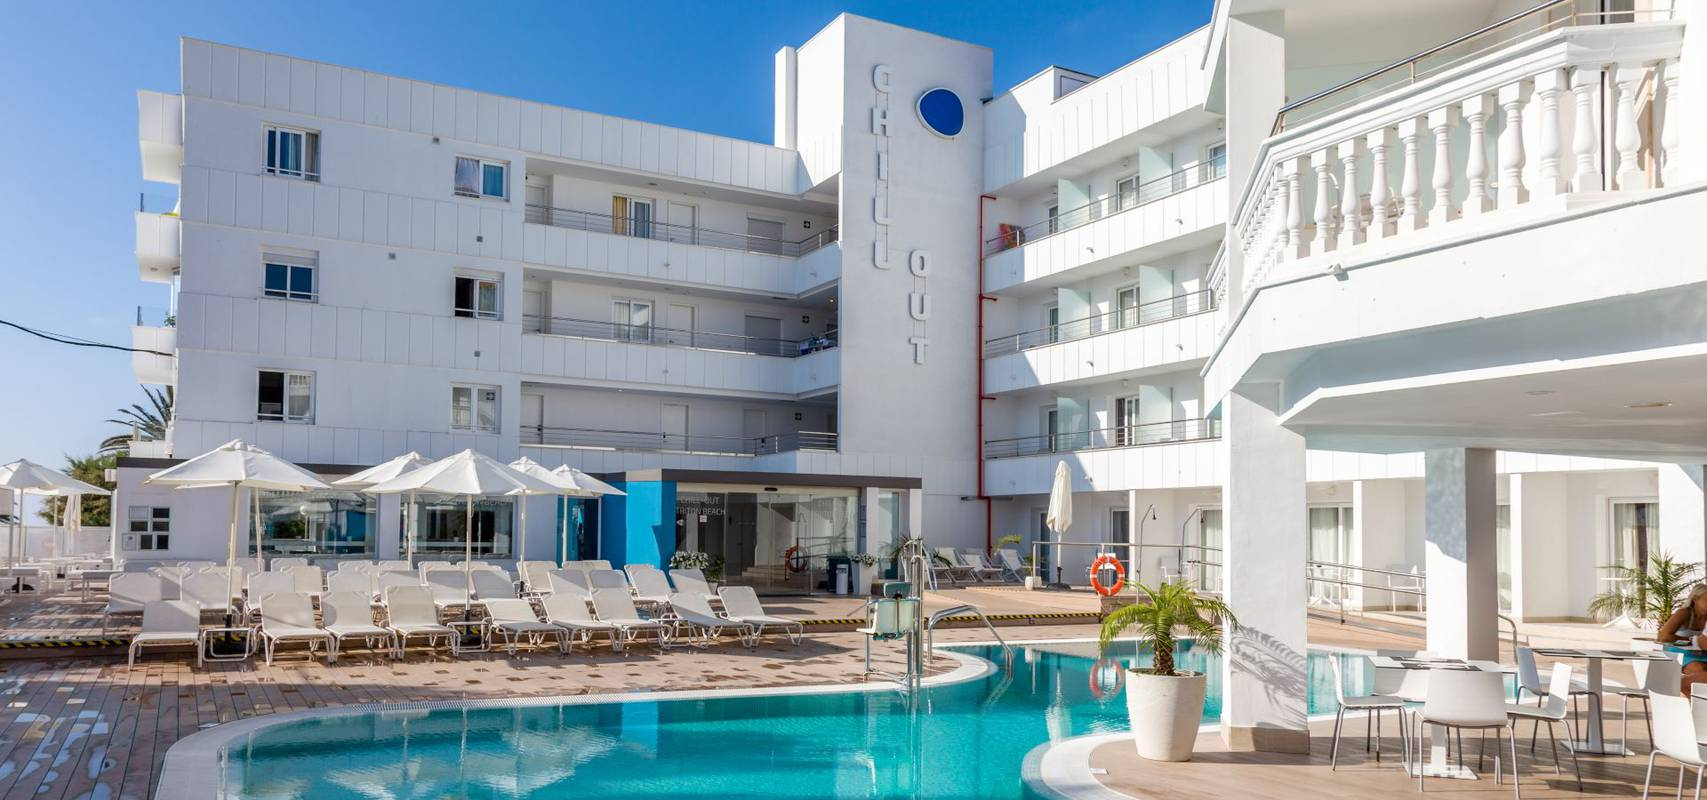 Wecken sie ihre sinne... hotel triton beach -adults only cala ratjada